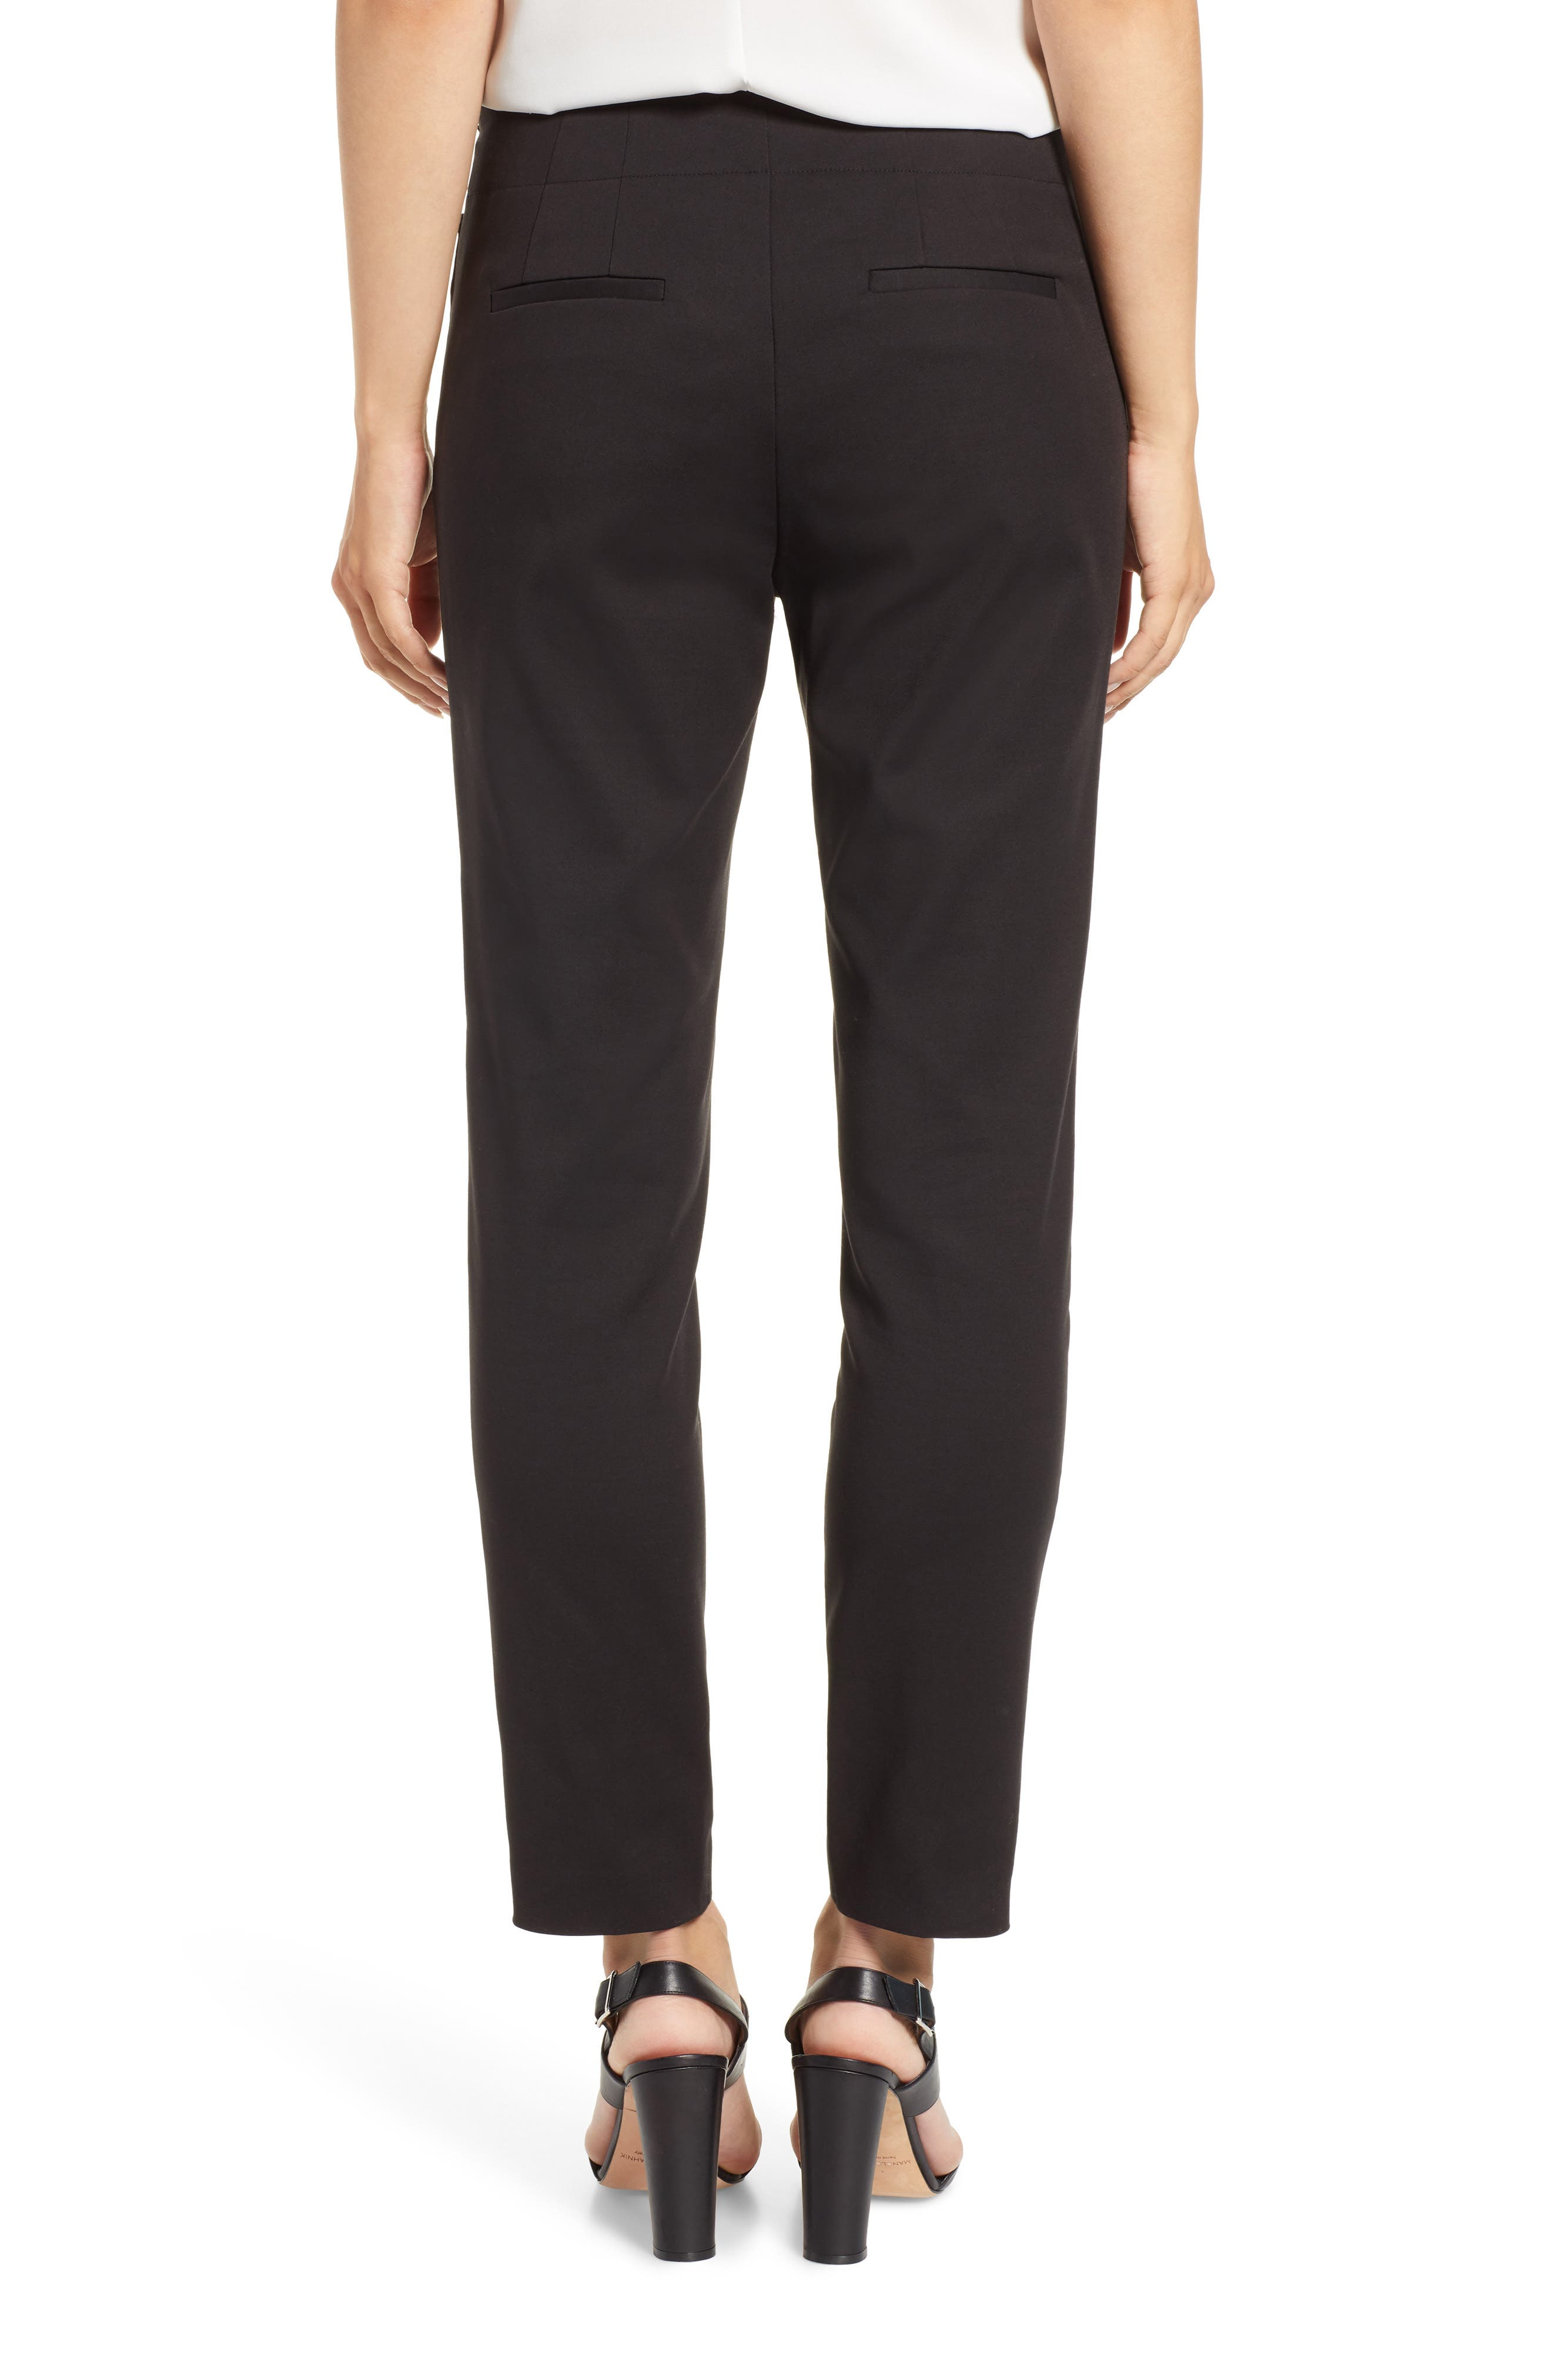 VINCE CAMUTO, Side Zip Stretch Cotton Blend Pants, Alternate thumbnail 2, color, RICH BLACK